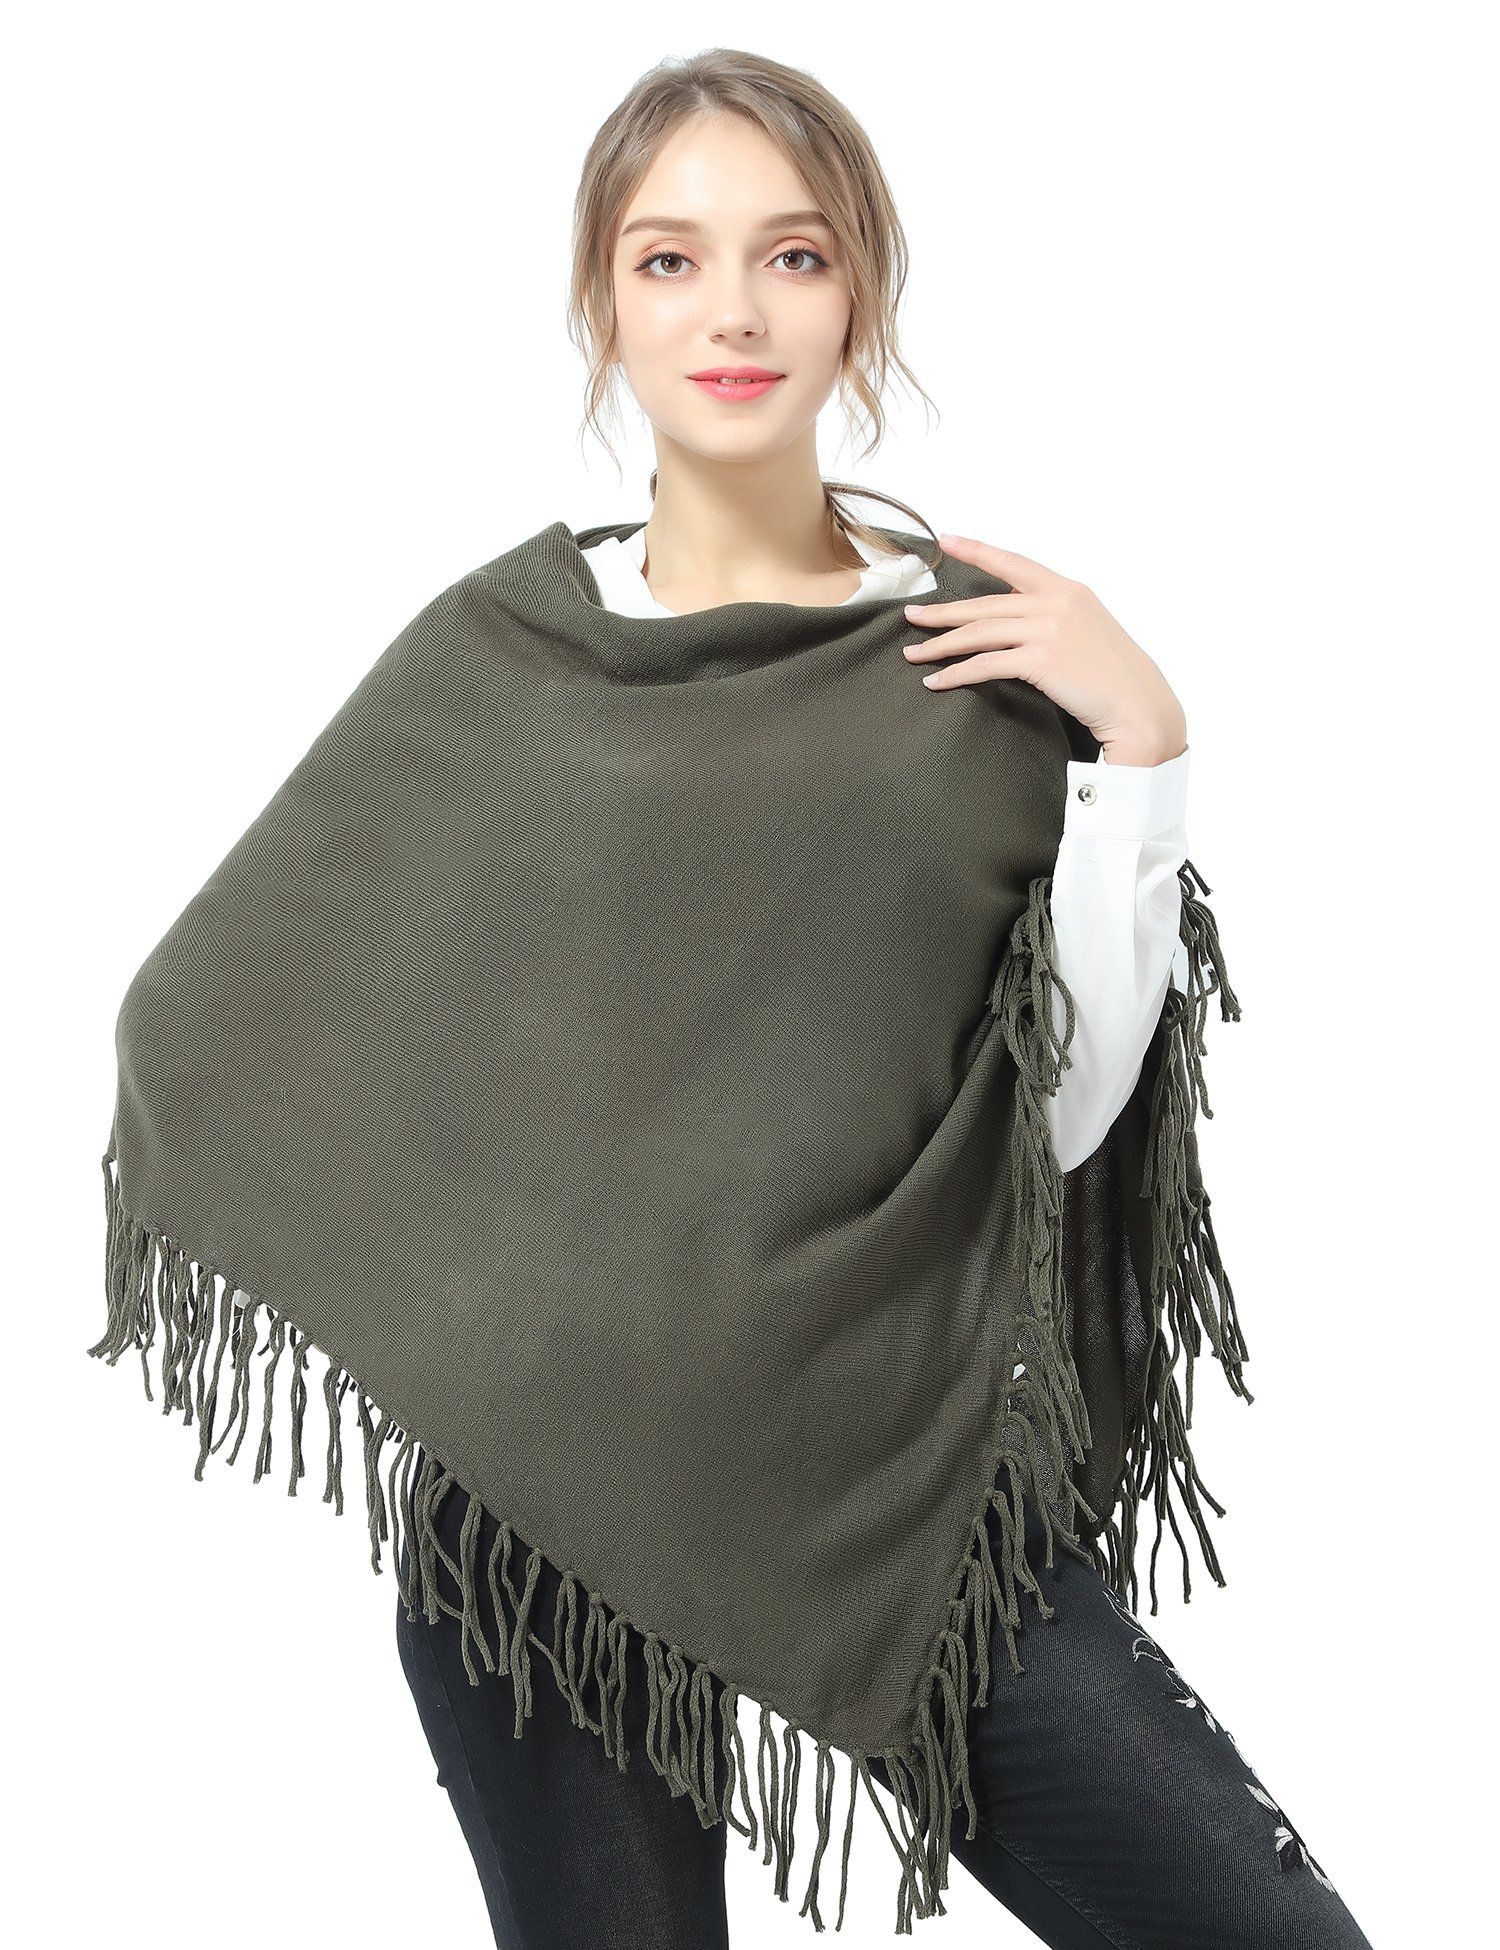 Joulli Women's Knitted Asymmetric Poncho Wrap Shawl Green, One Size